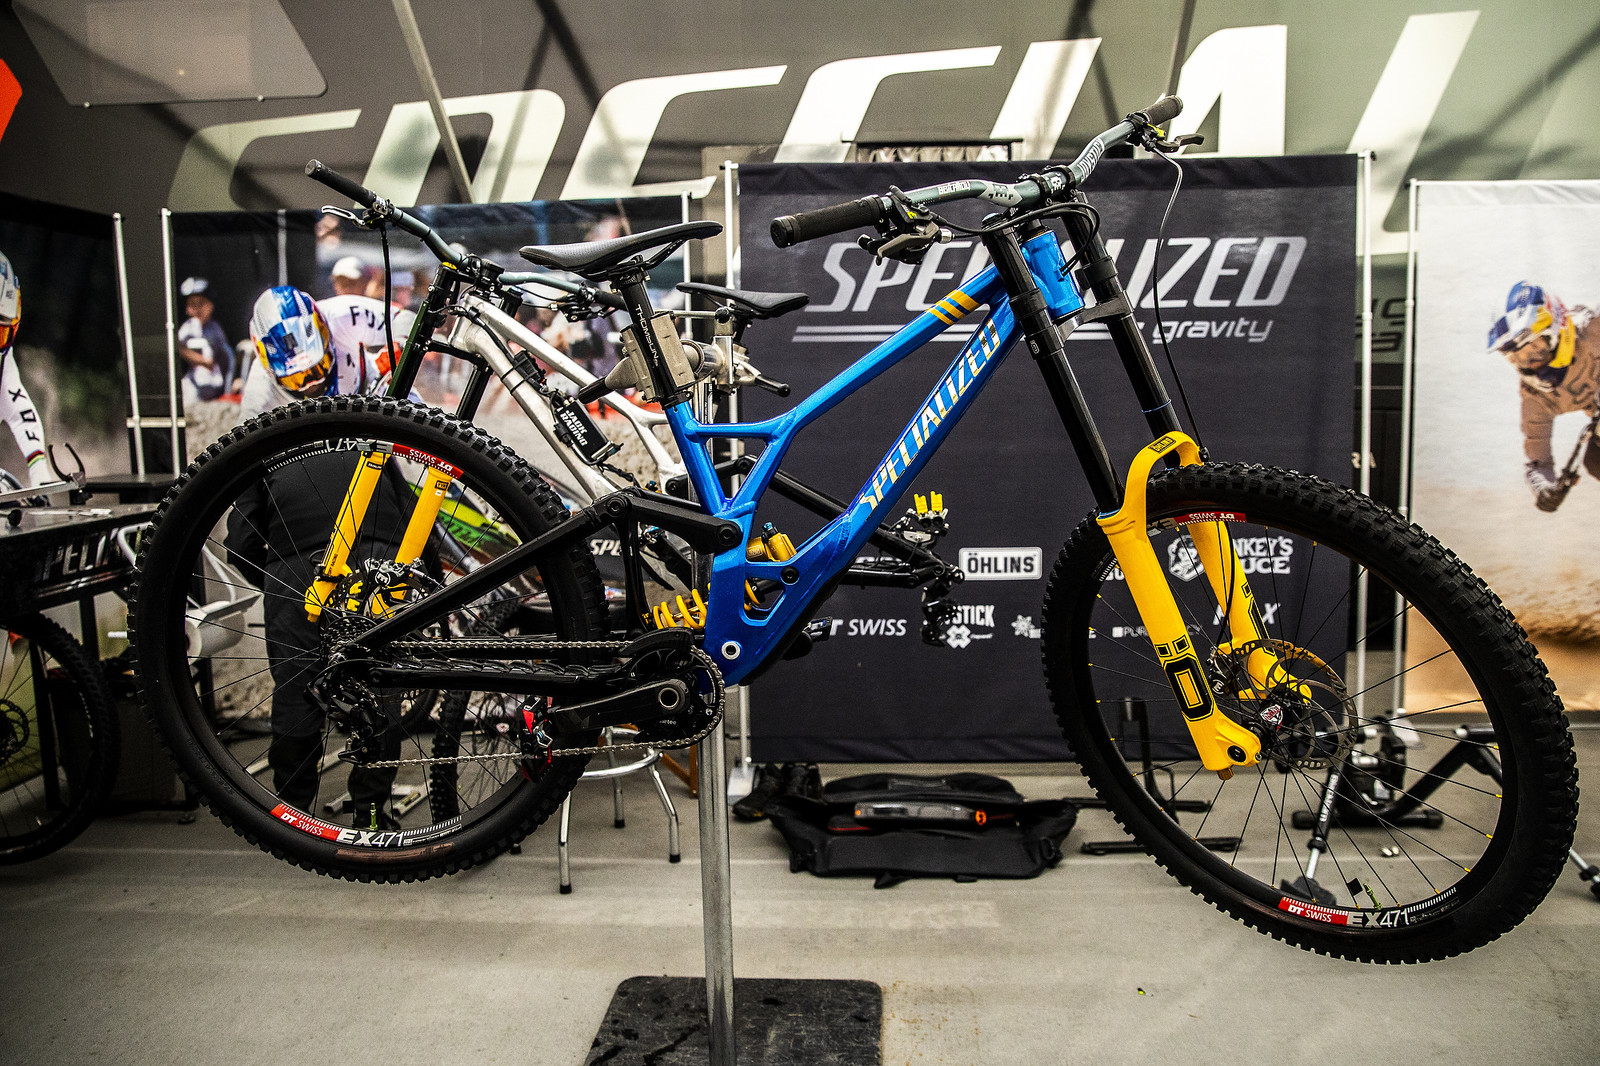 Loic Has a New Specialized Demo - PIT BITS - 2019 Lenzerheide World Cup Downhill - Mountain Biking Pictures - Vital MTB